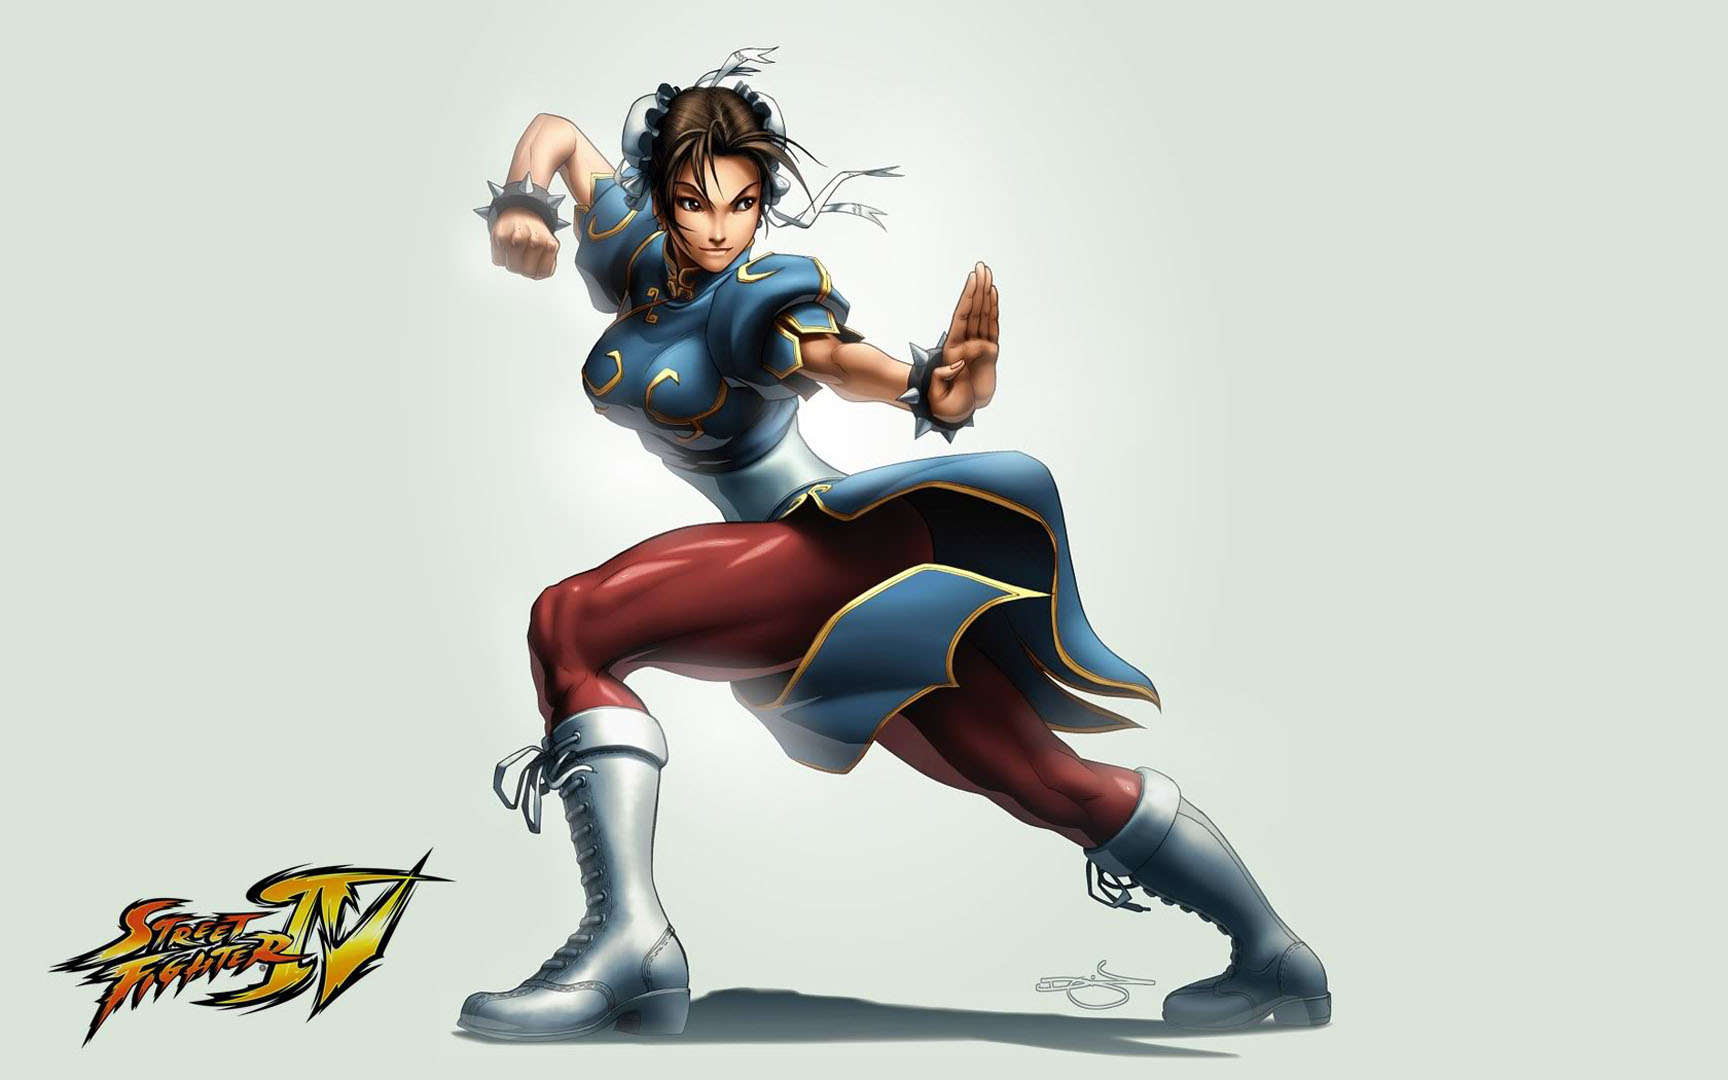 World anime pic & hot chun li  fucking tube